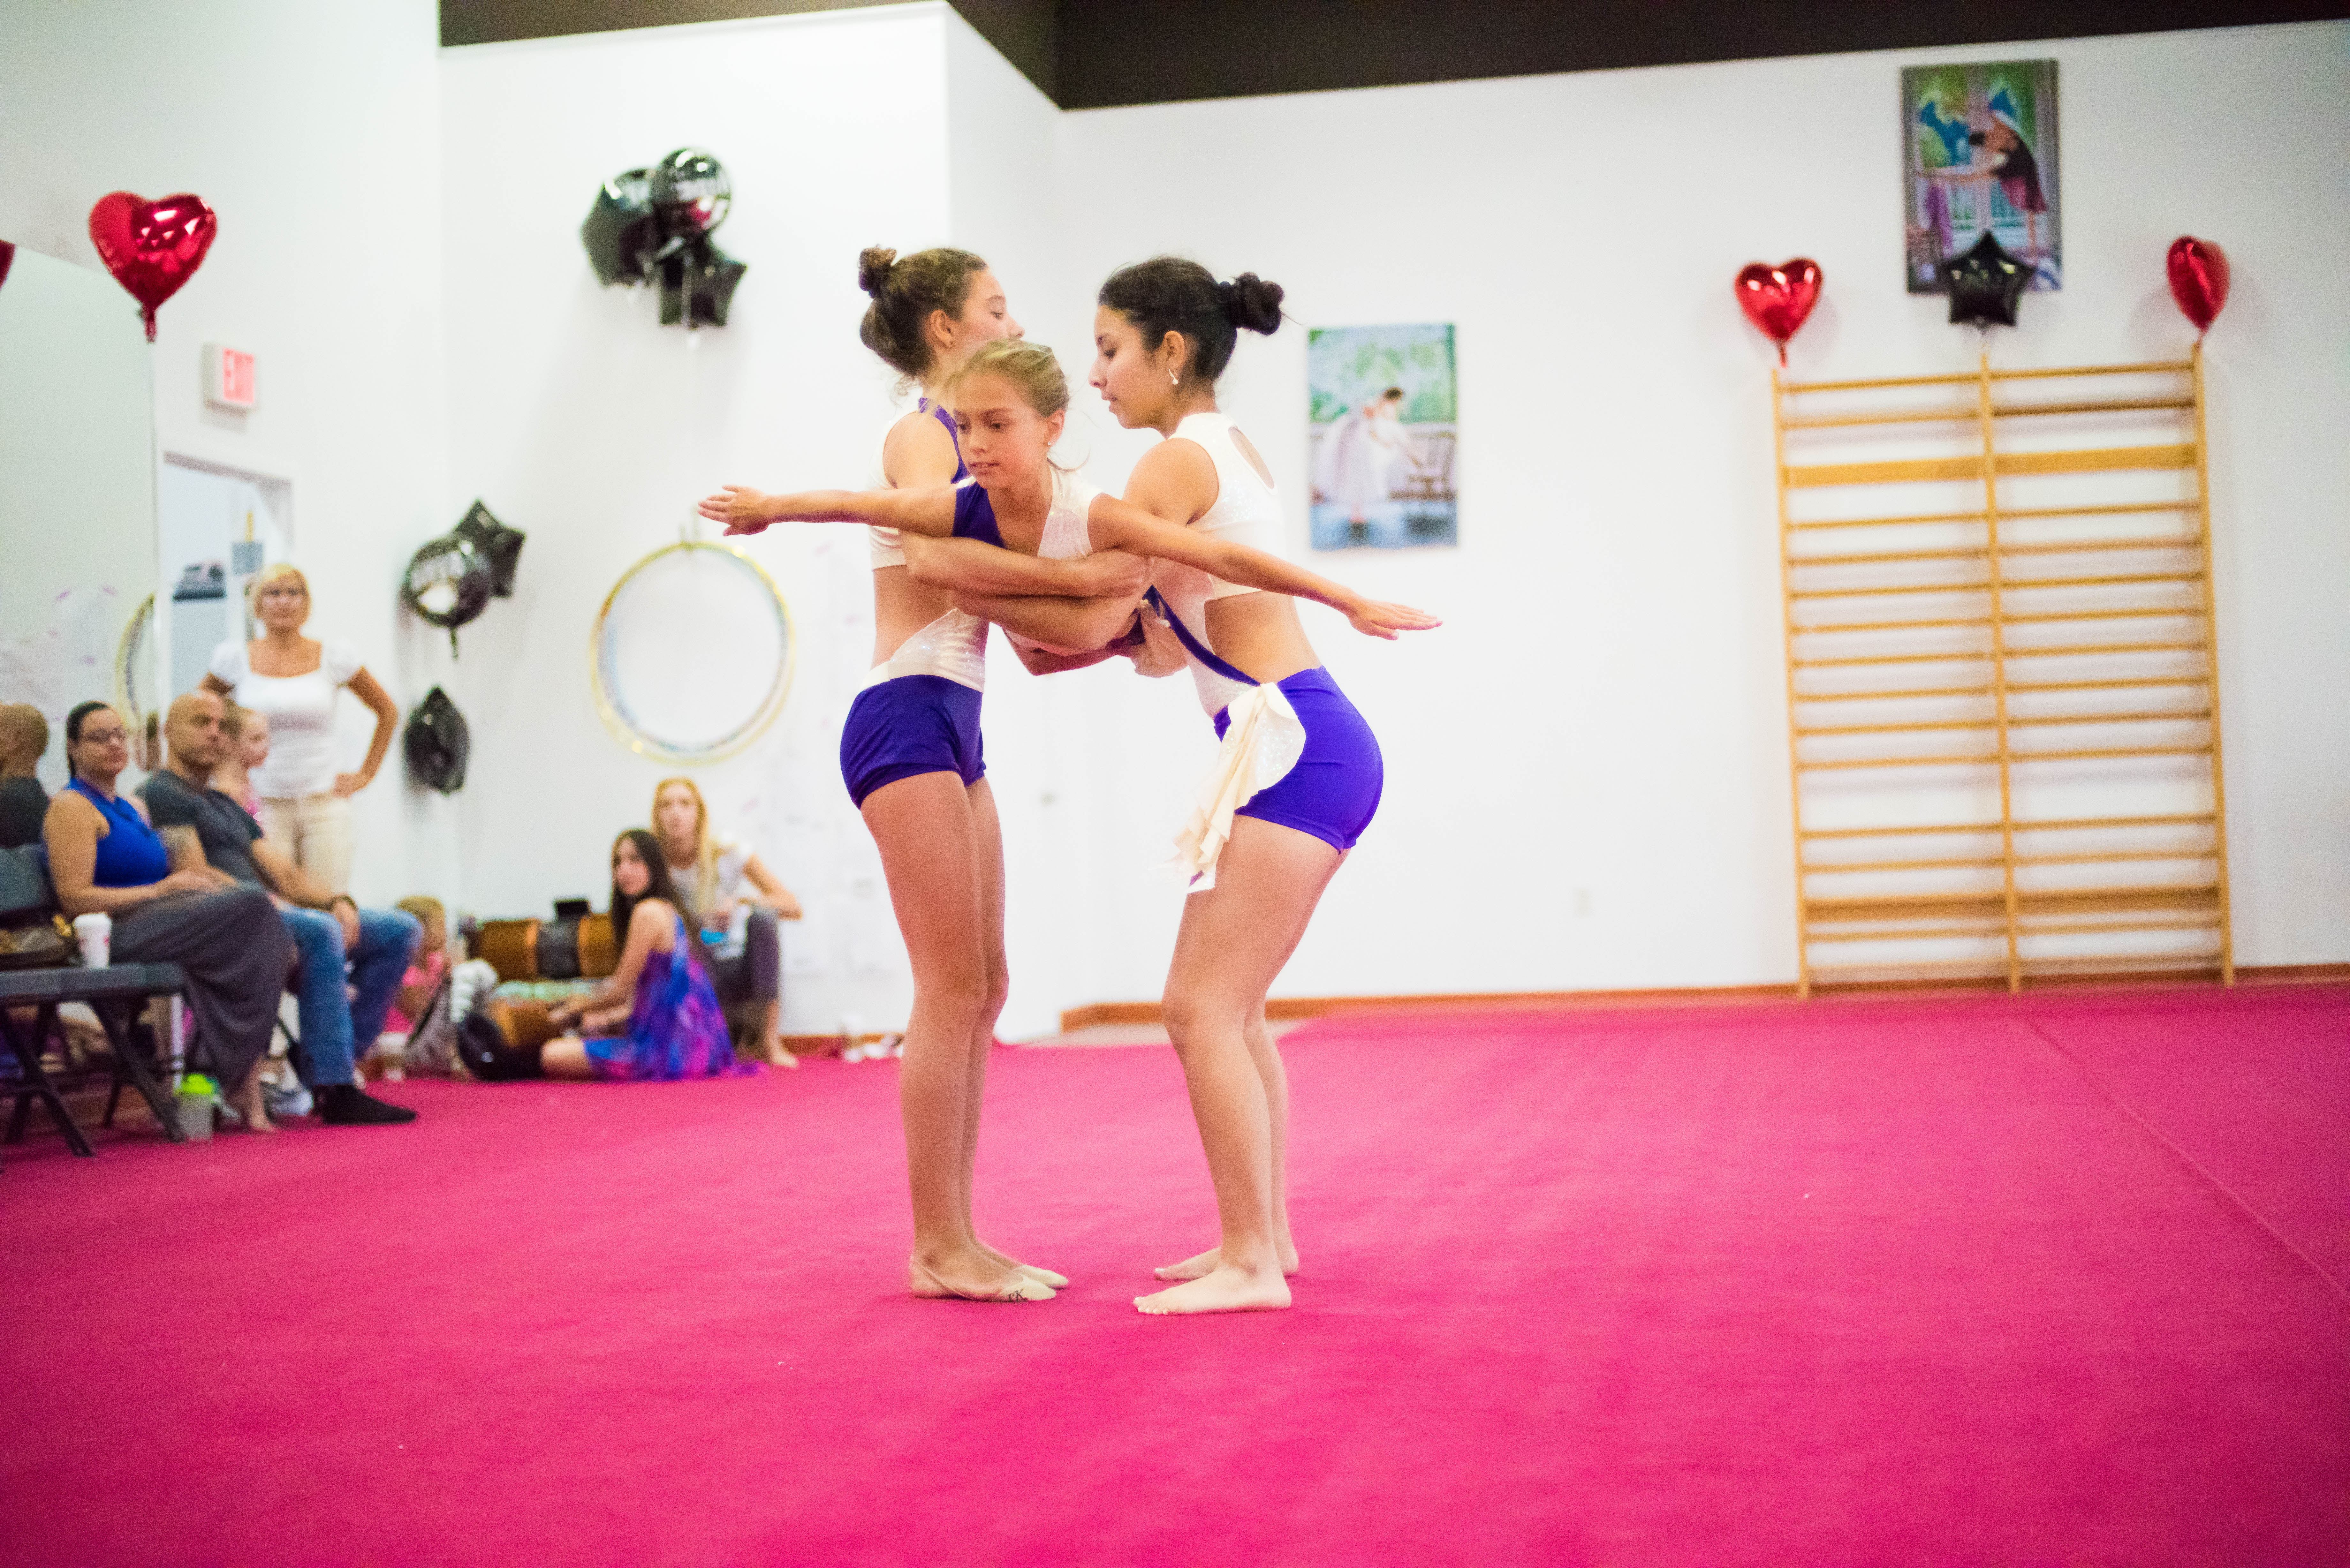 kids acrobatics Miami, acrobatics Miami, kids acrobatics classes, kids acrobatics, acro for kids, best acrobatics classes in Miami